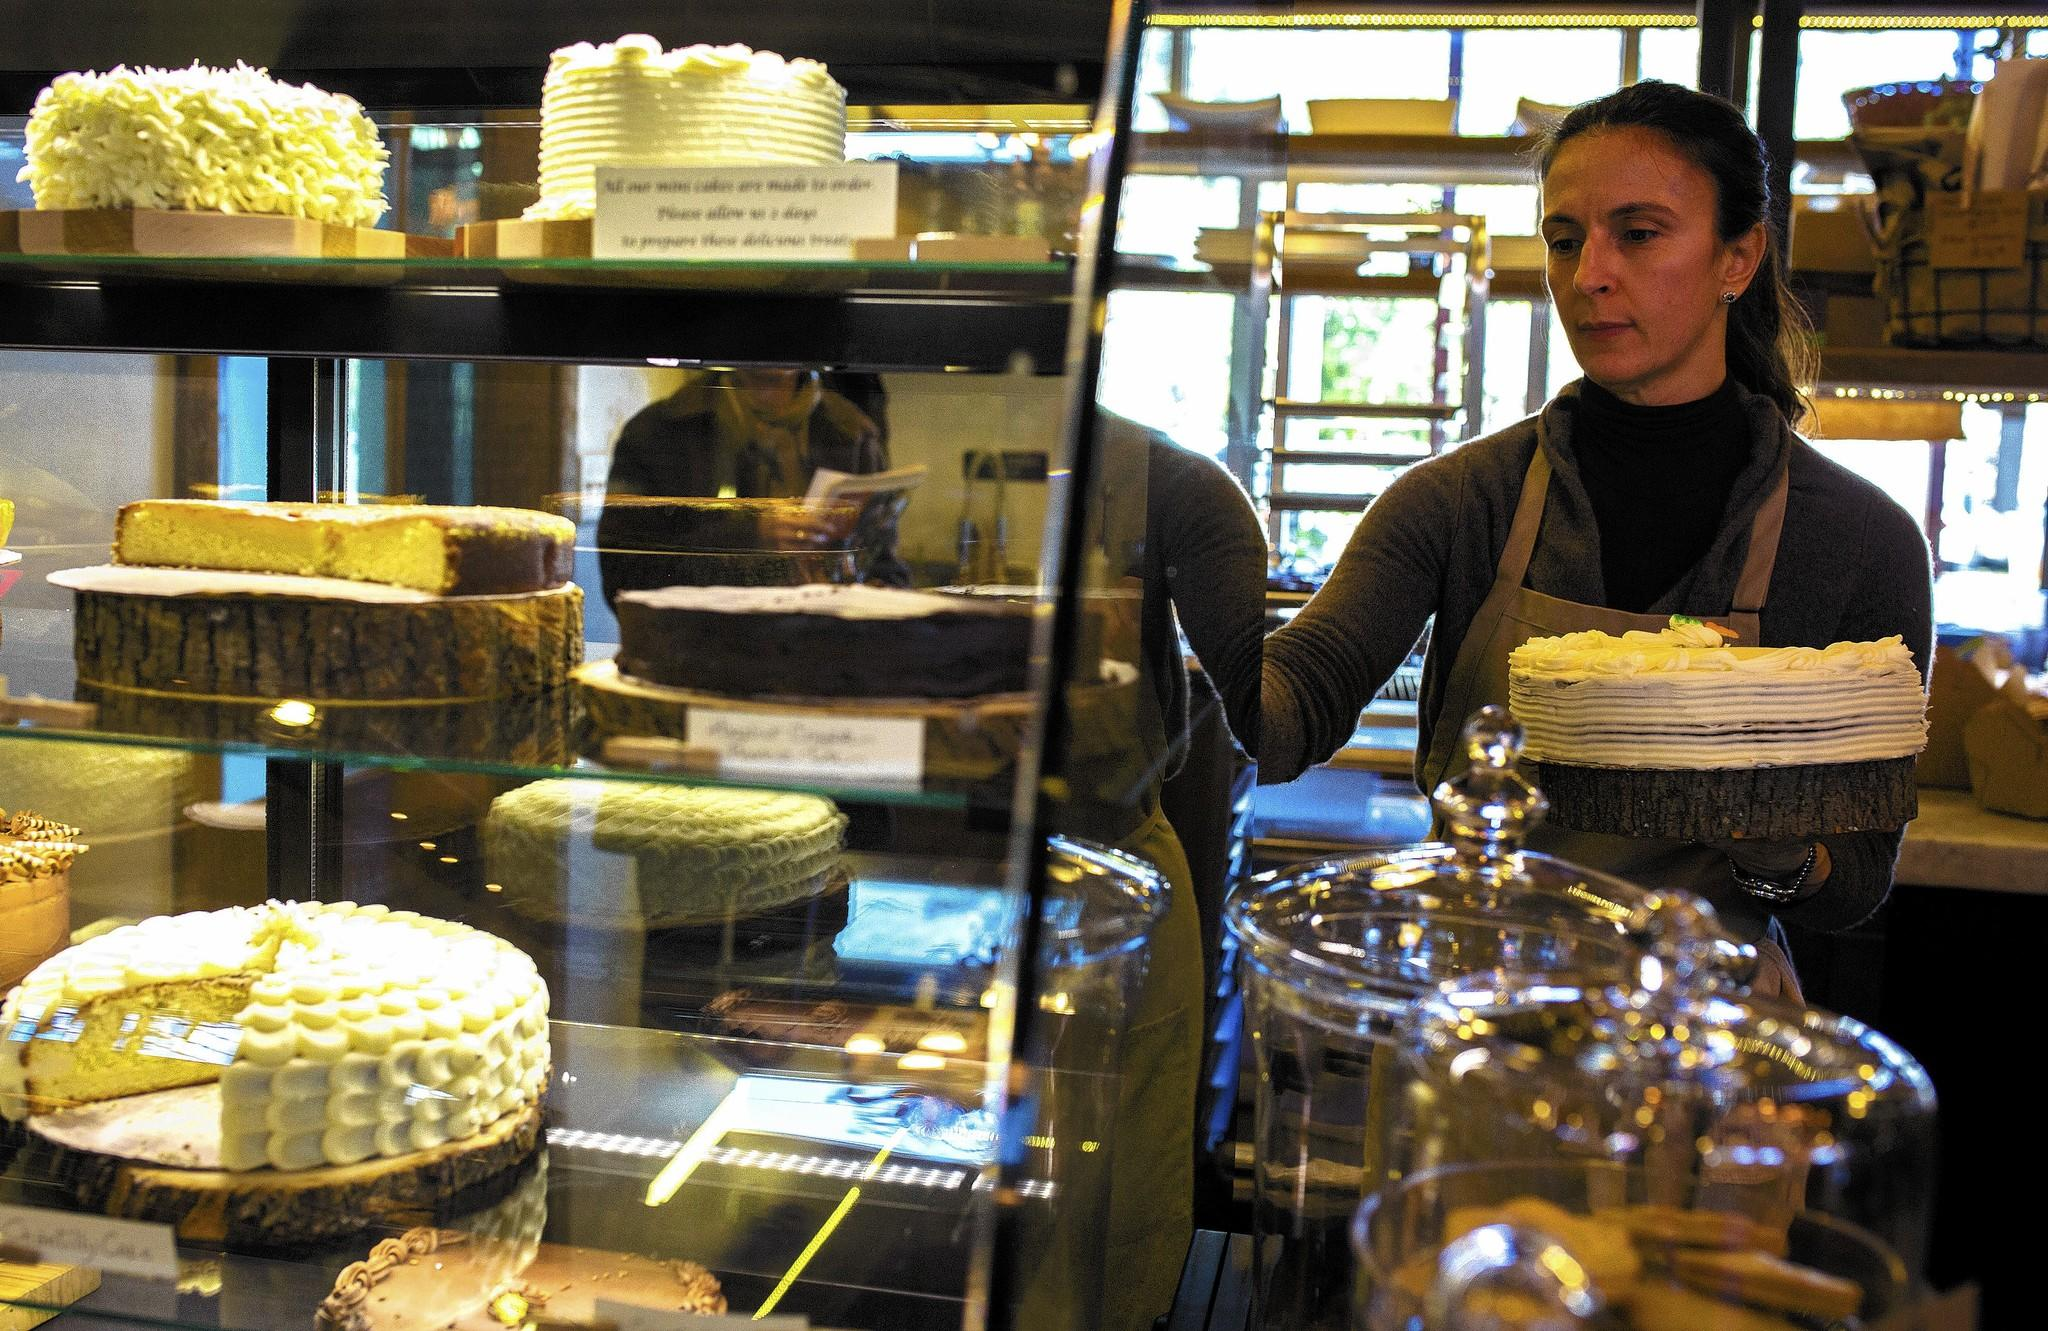 Elisa Scarpa, owner of Fatto in Casa, fills the dessert case in her store at East End Market.